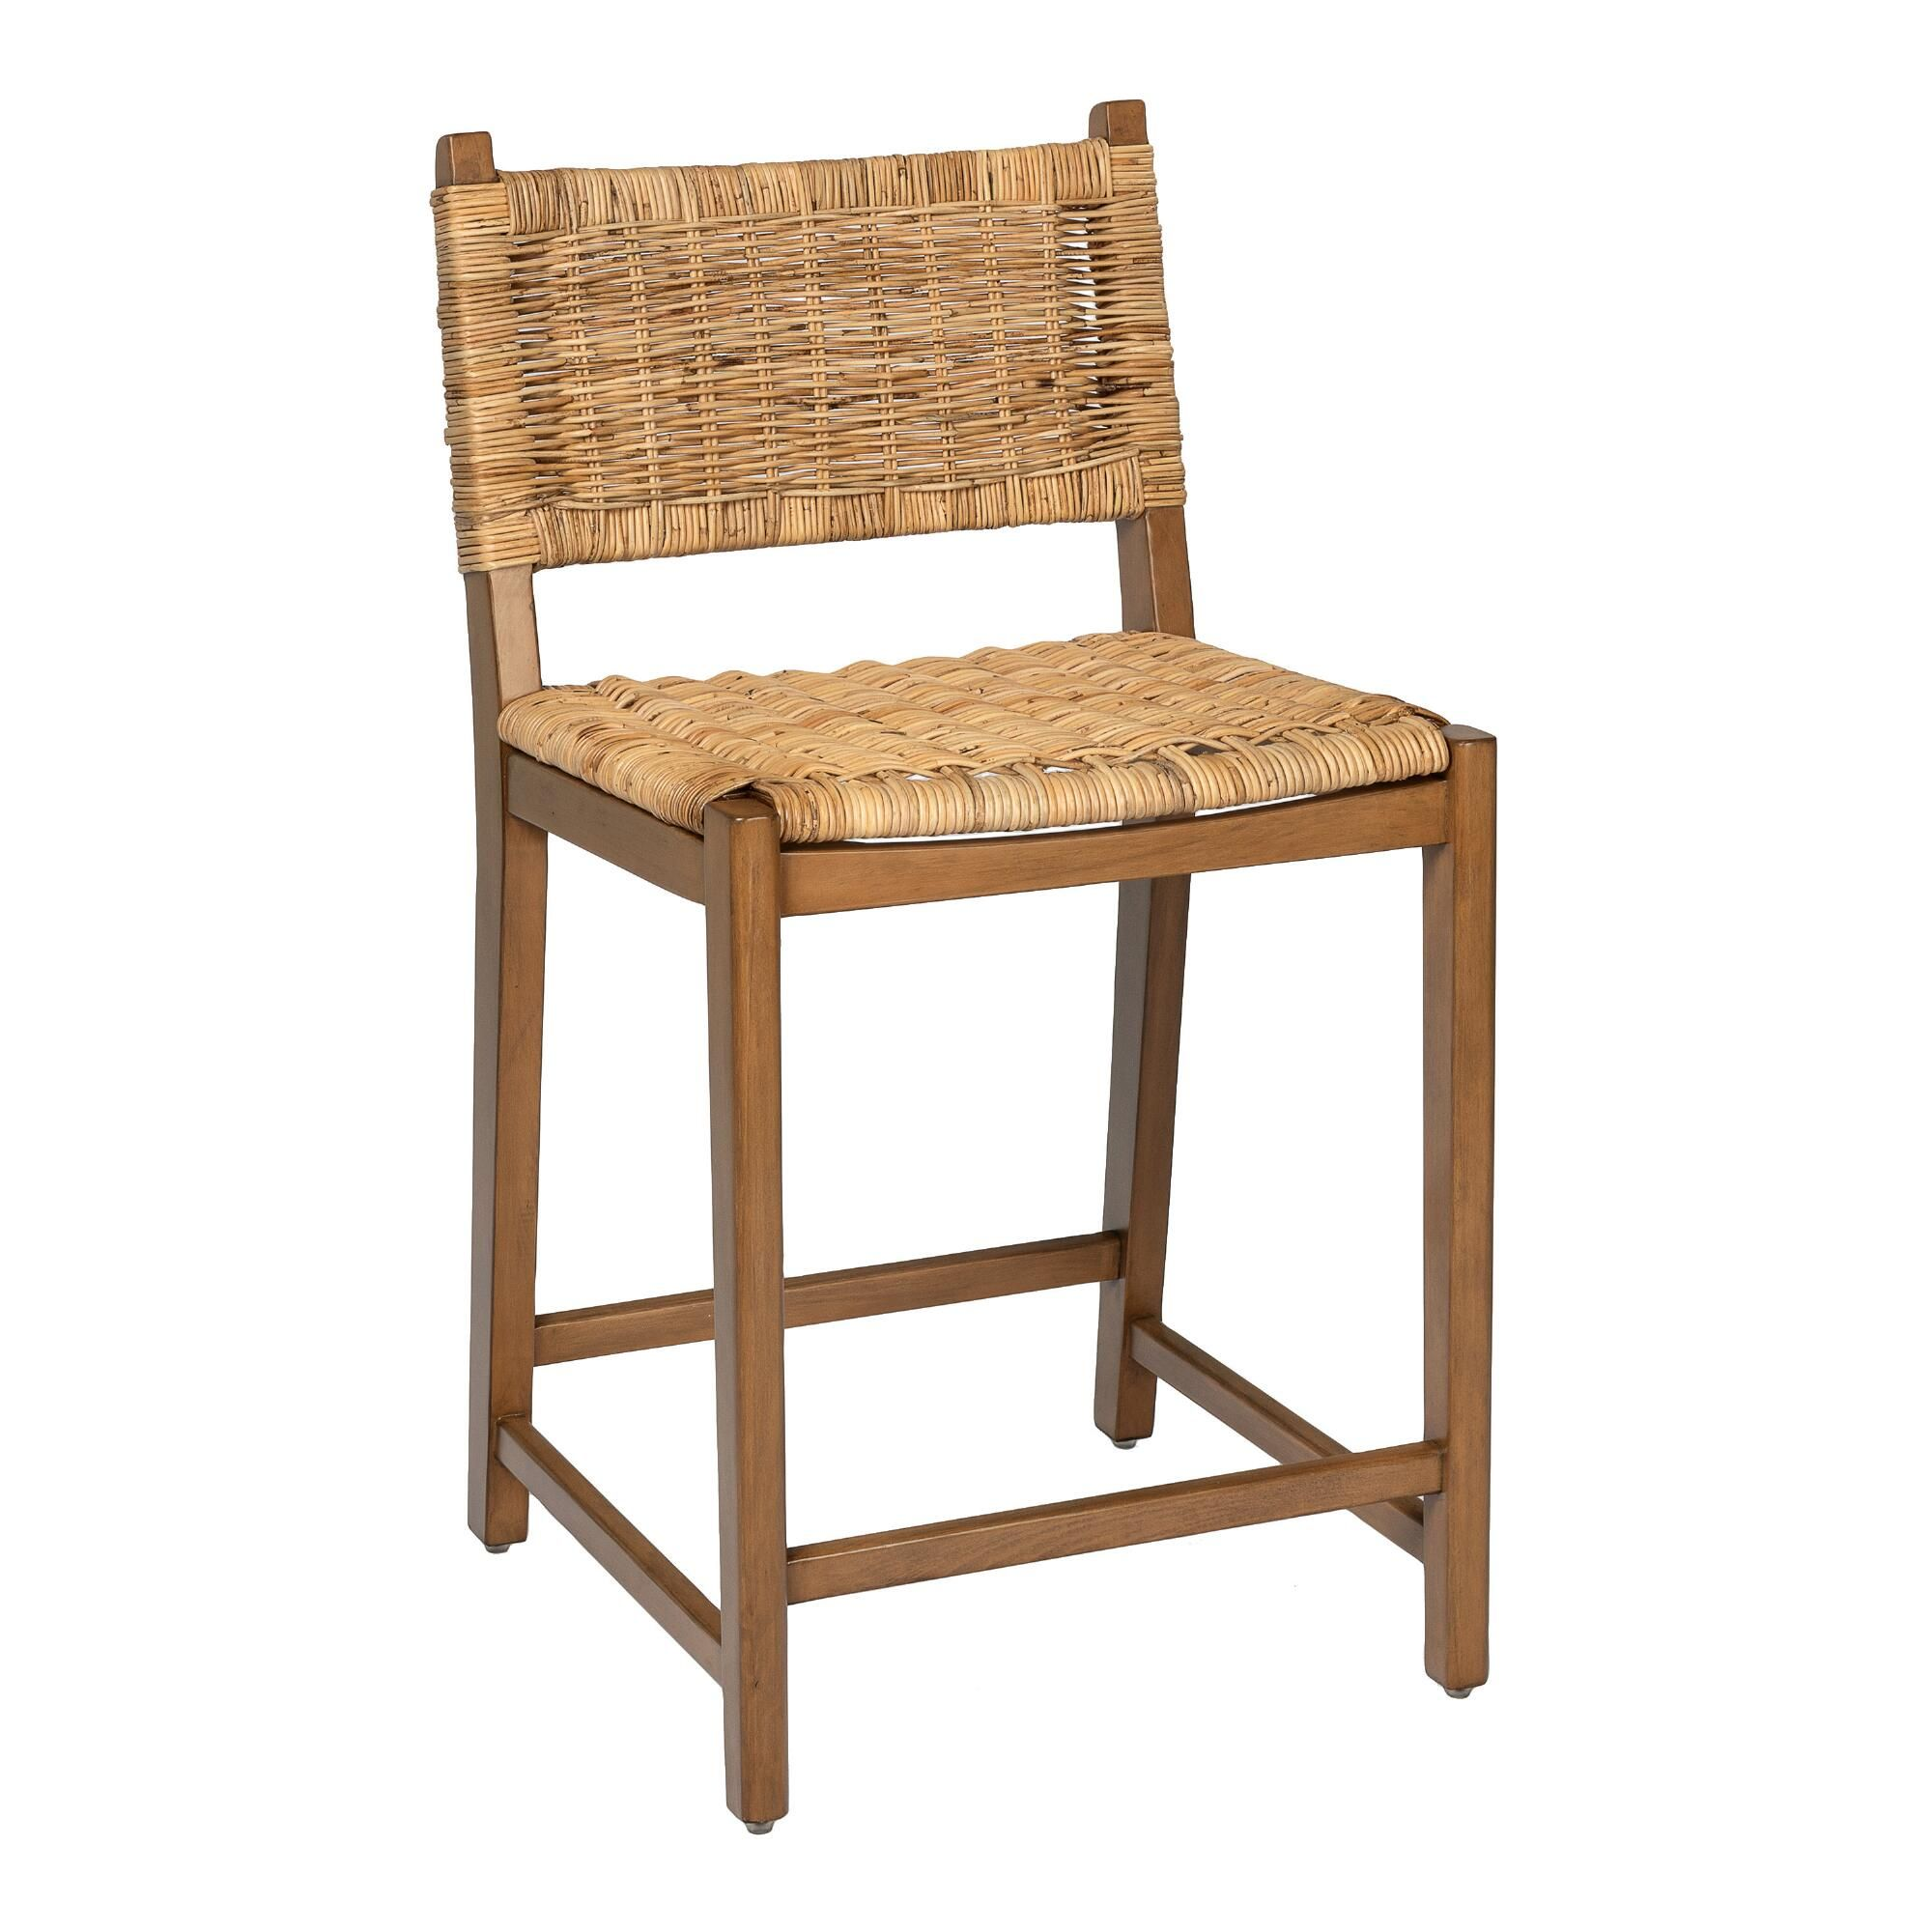 Natural Rattan And Wood Amolea Counter Stool Brown Multi Natural Wood By World Market In 2021 Counter Stools Rattan Bar Stools Woven Bar Stools